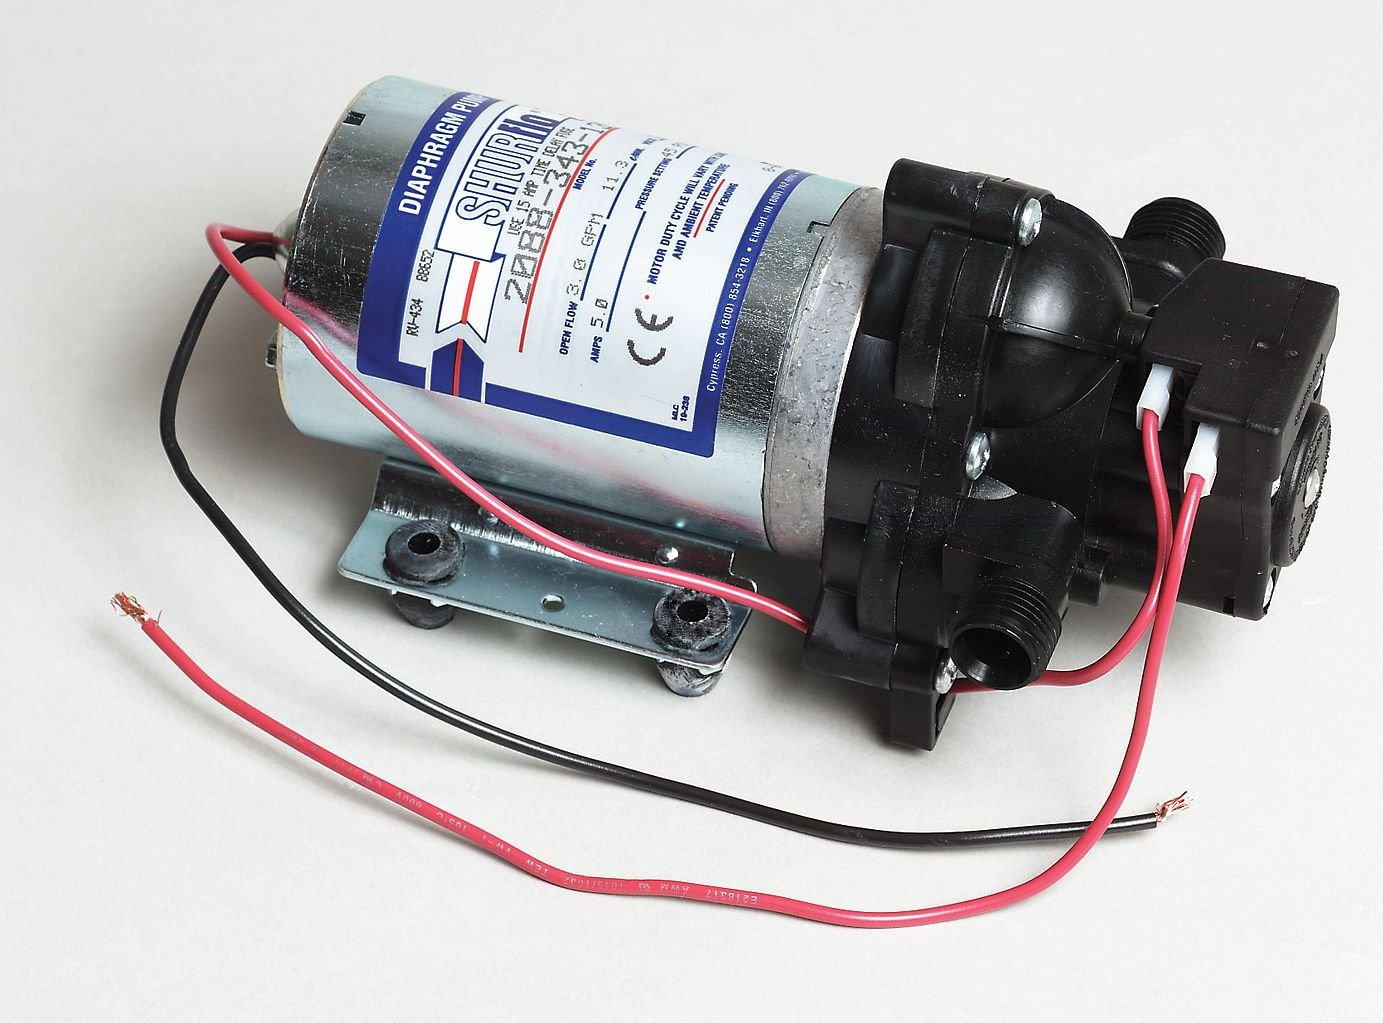 SHURflo Self-Priming 12 Volt Diaphragm Water Pump - 180 GPH, 1/2in. Ports, Model Number 2088-343-435 by Shurflo